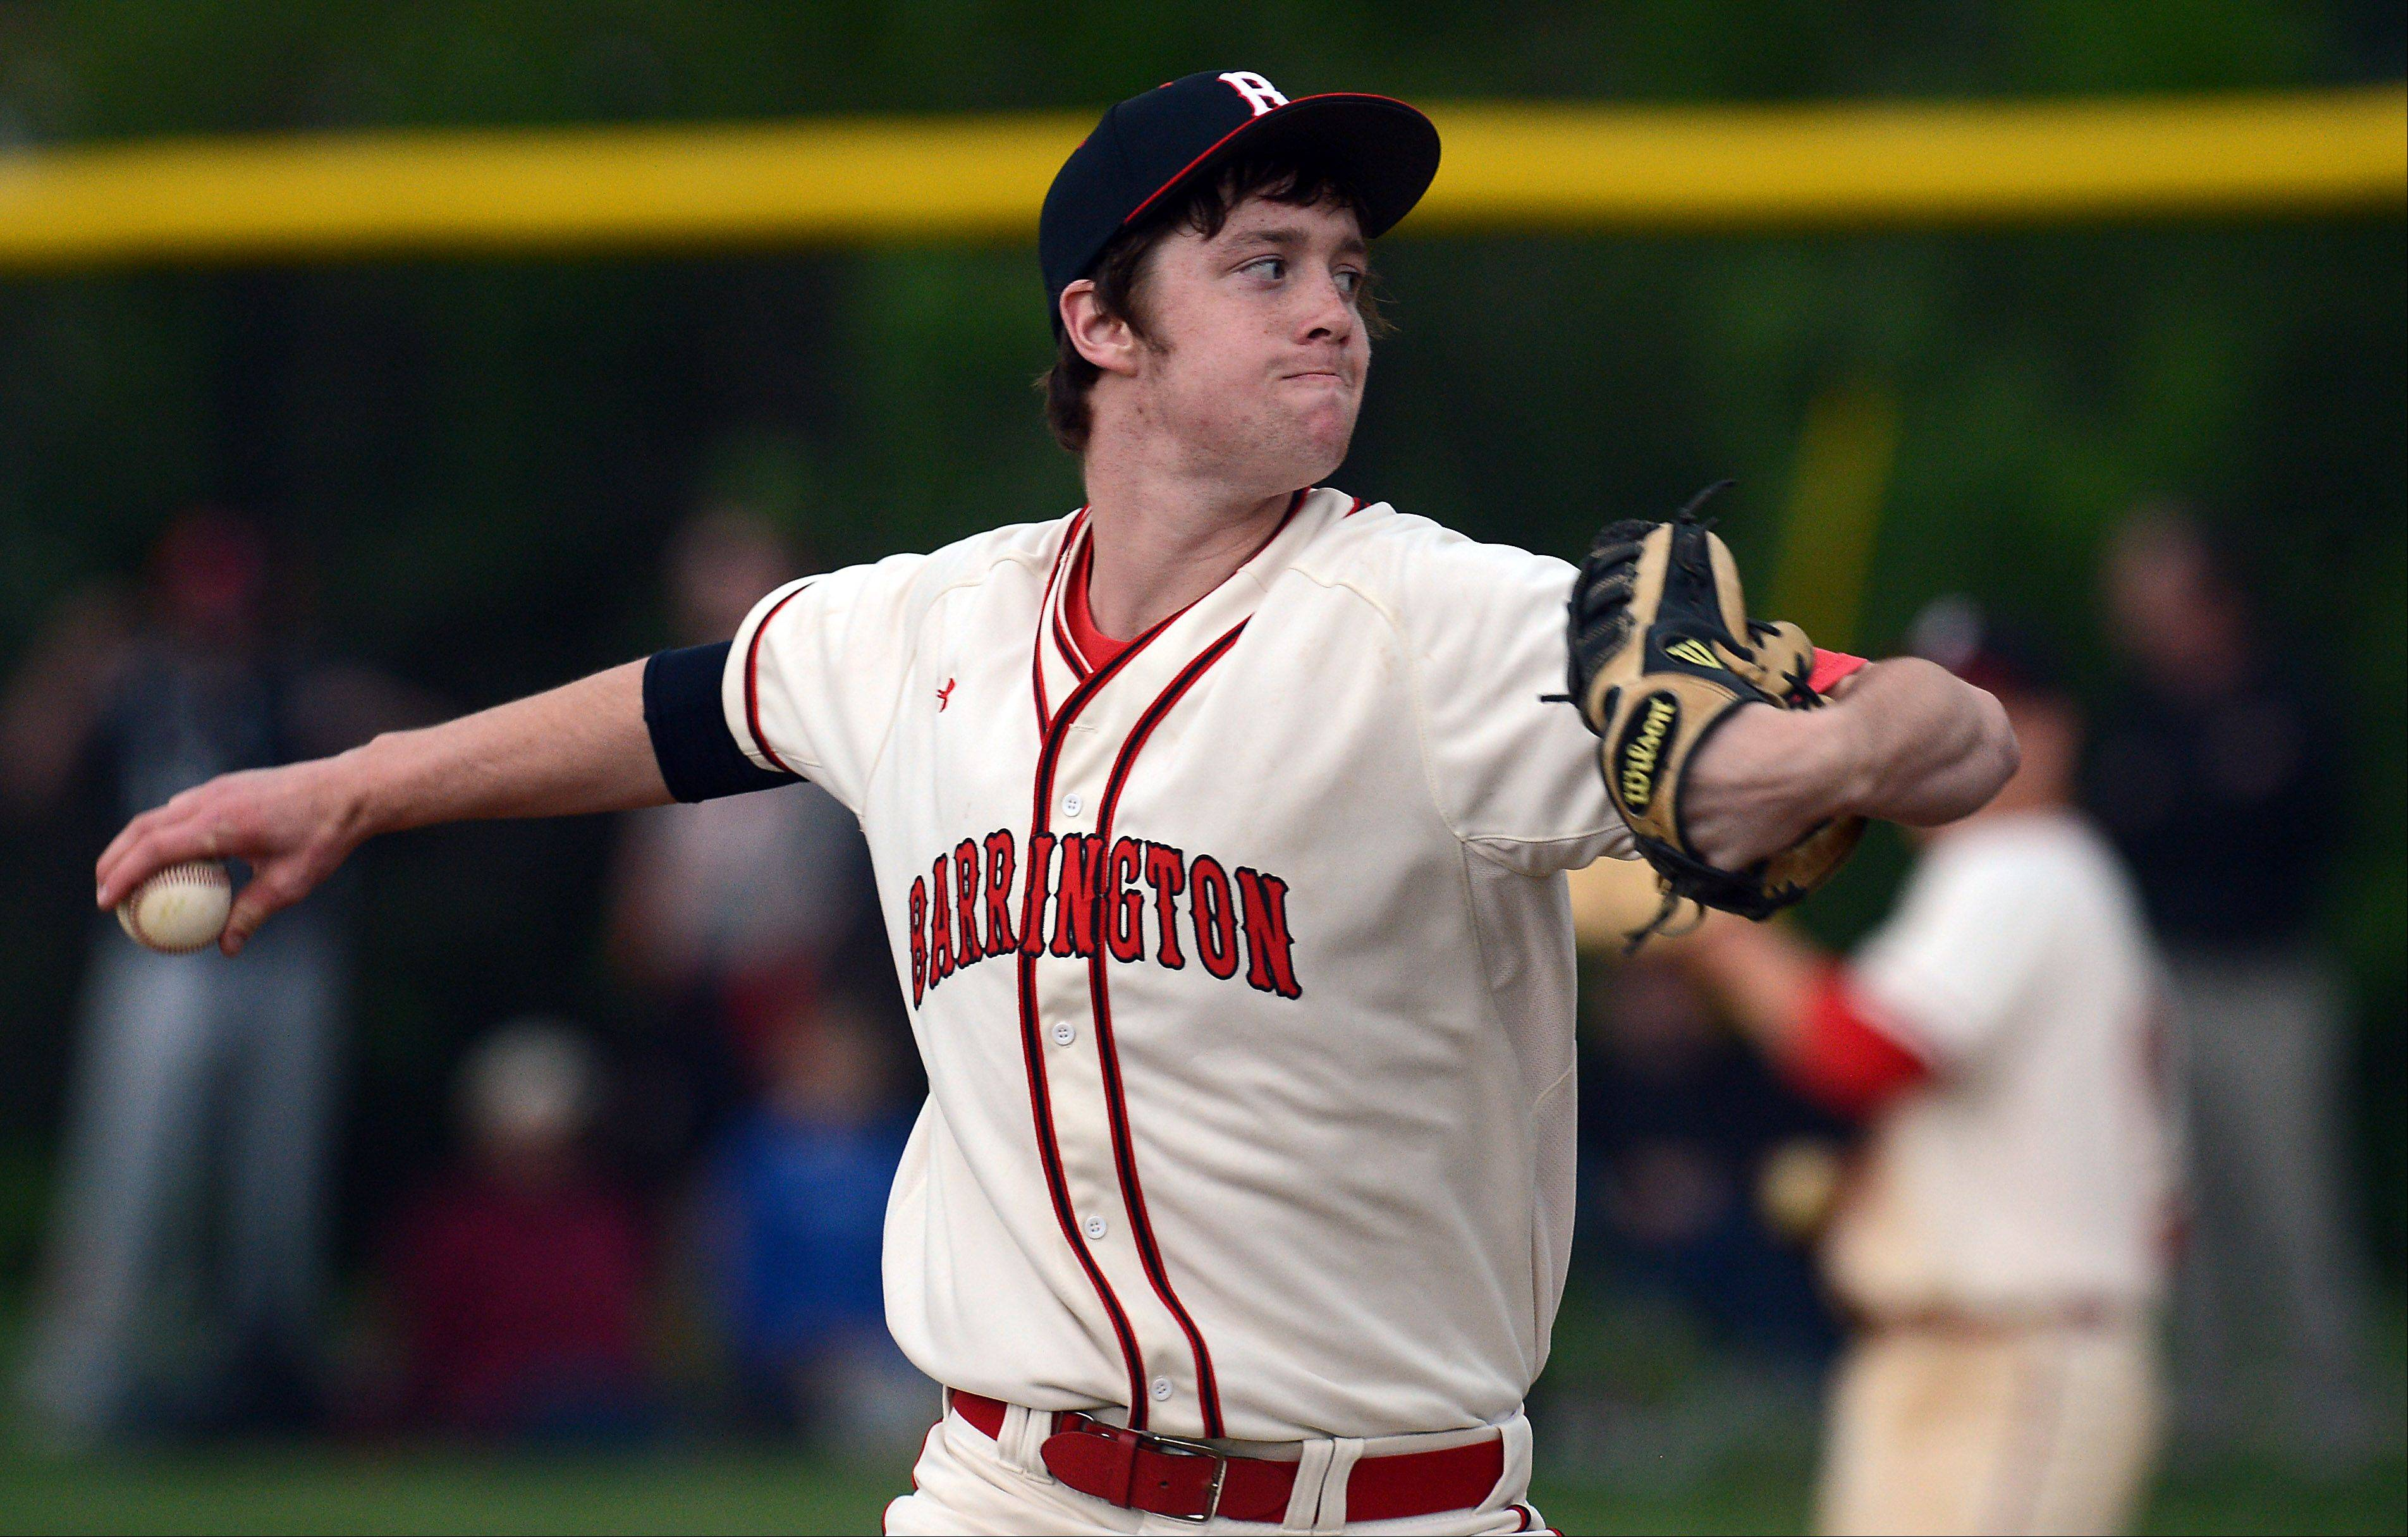 Barrington�s Wyatt Trautwein delivers last spring in the Mid-Suburban League title game against Rolling Meadows.